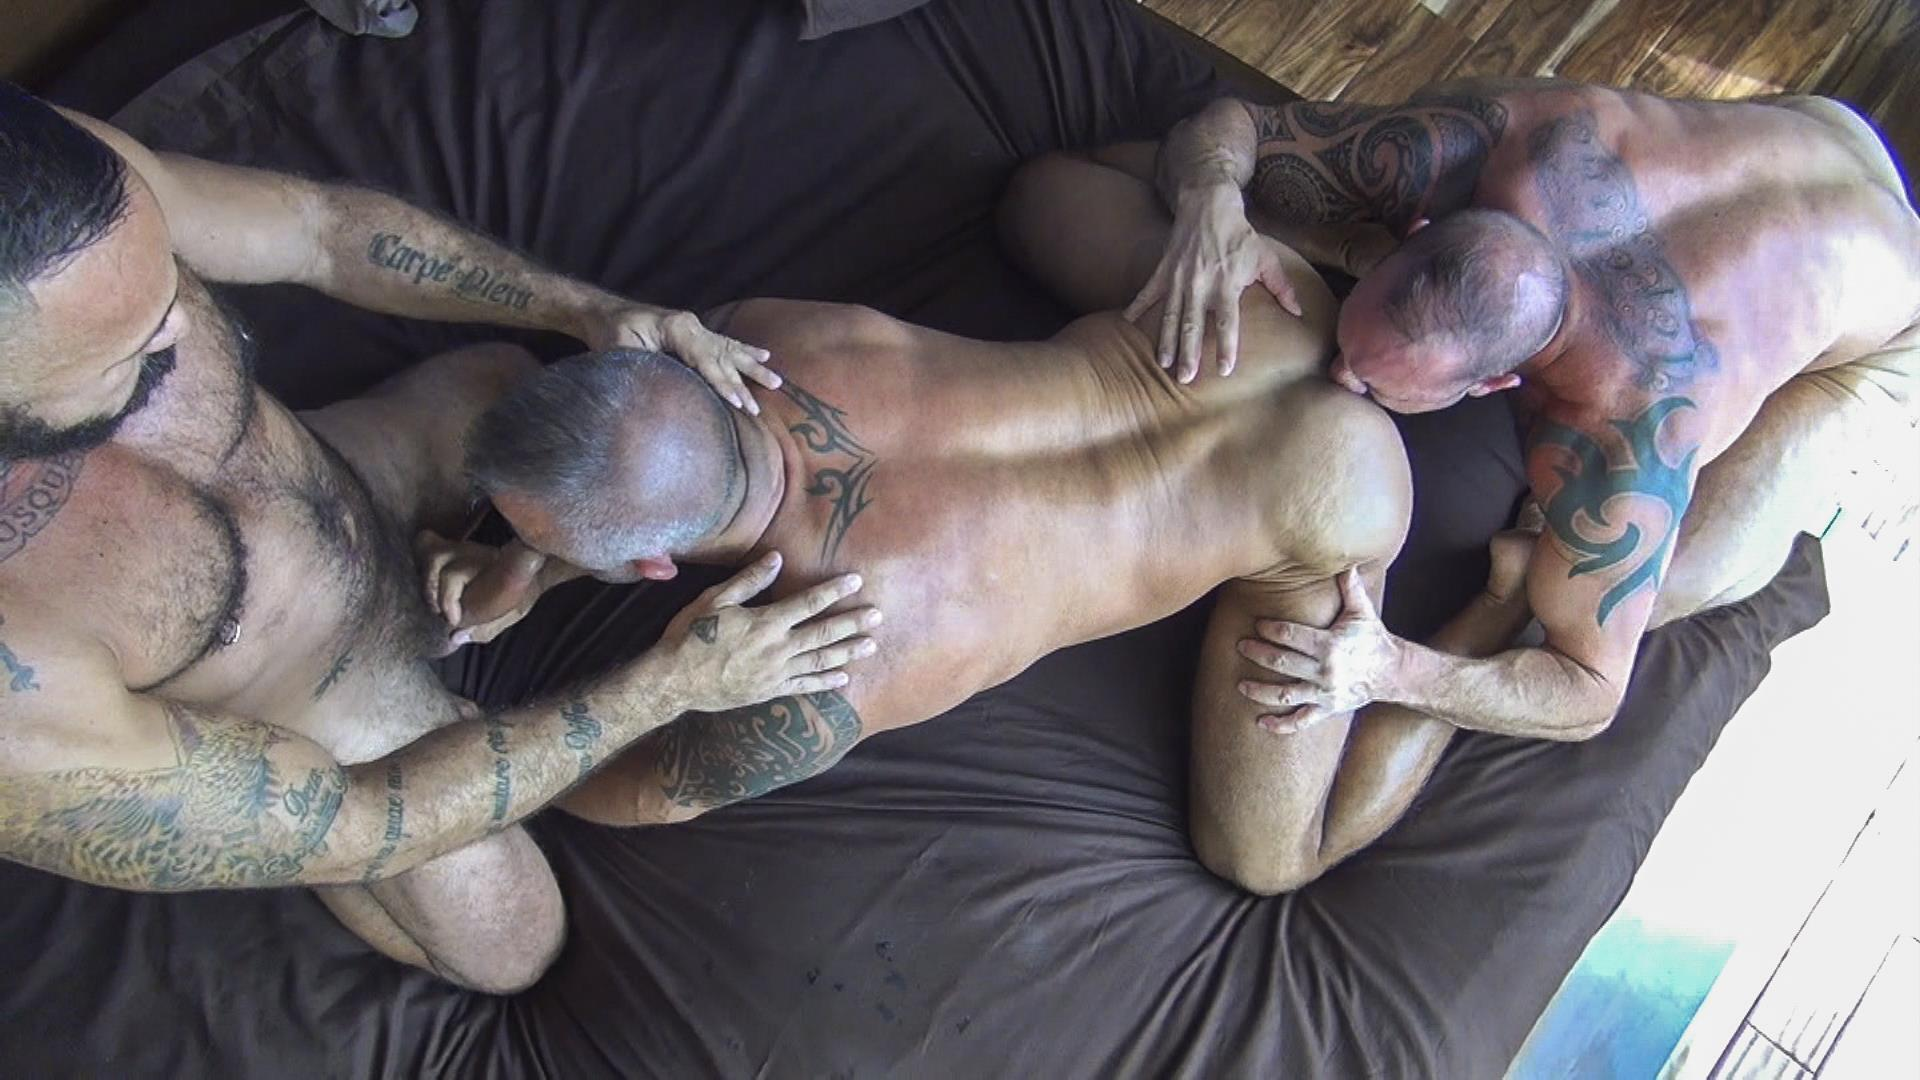 Raw Fuck Club Alessio Romero and Jon Galt and Vic Rocco Hairy Muscle Daddy Bareback Amateur Gay Porn 2 Hairy Muscle Daddy Threeway Double Bareback Penetration